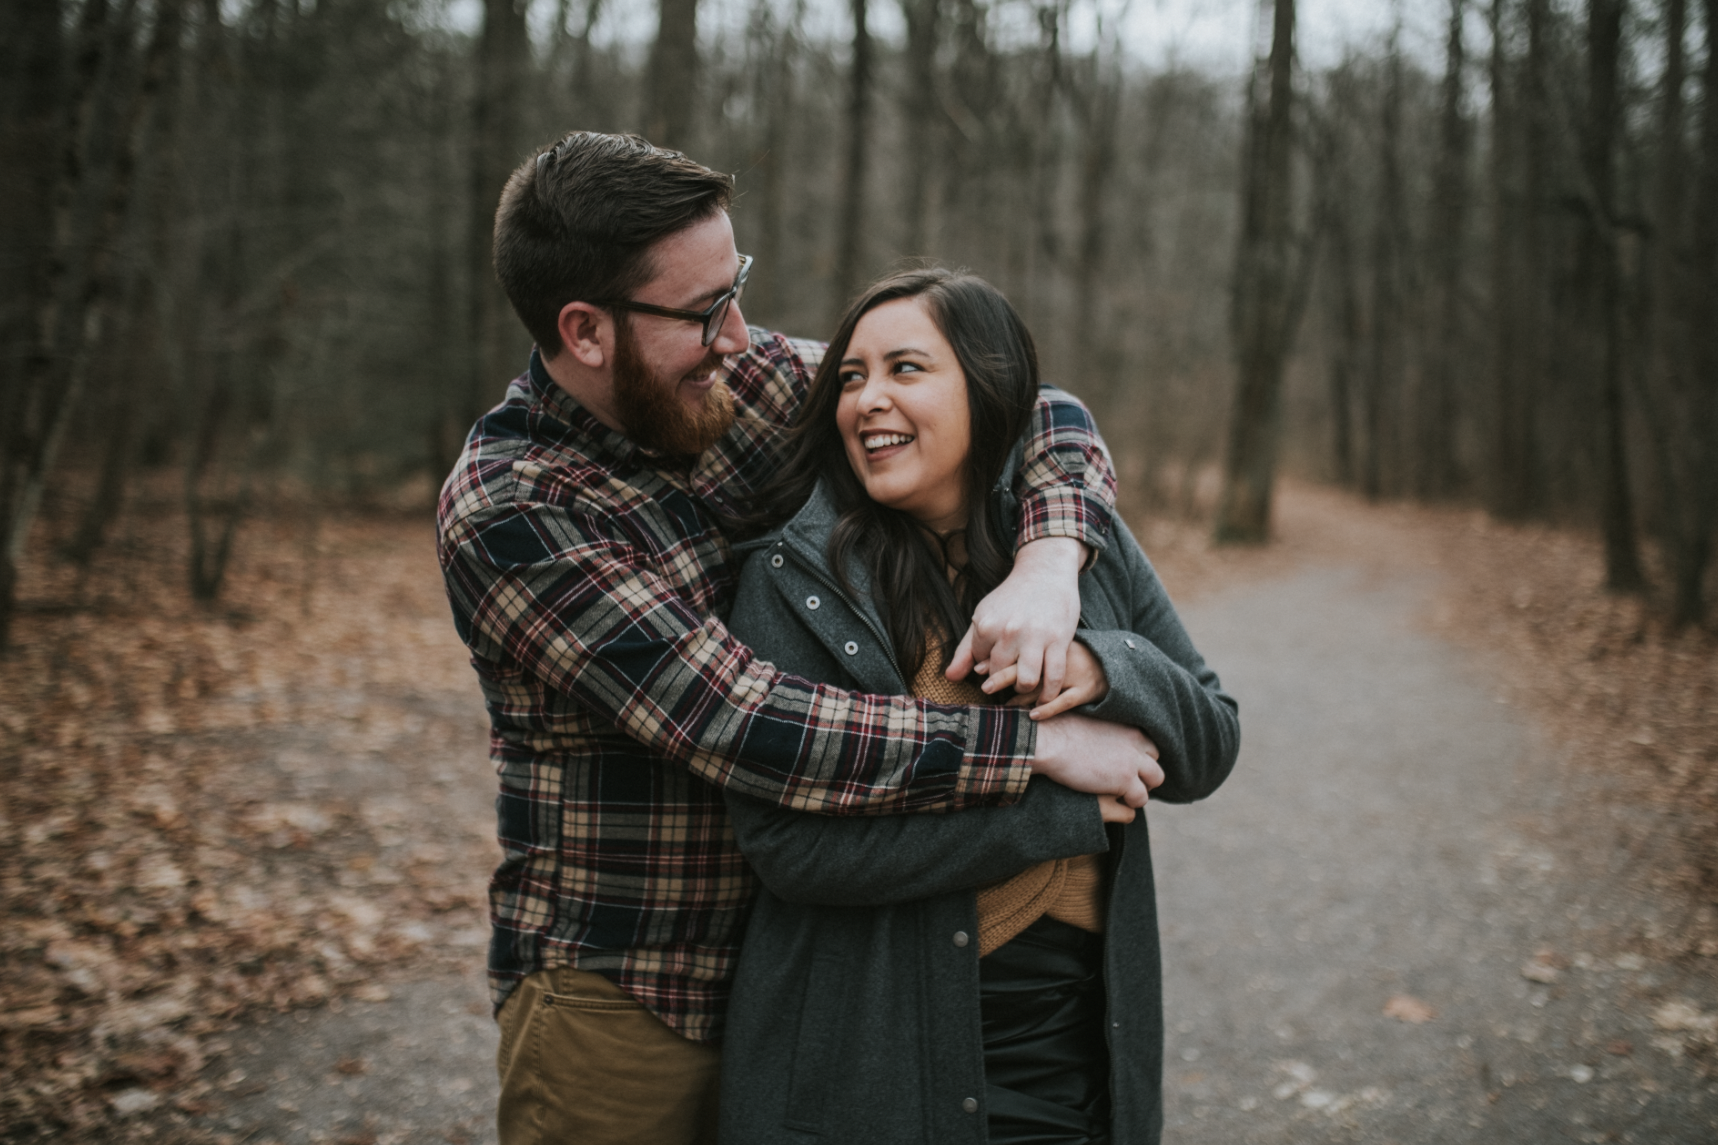 matt-natalia-winter-woods-engagement-session-pennsylvania-wedding-photographer-2